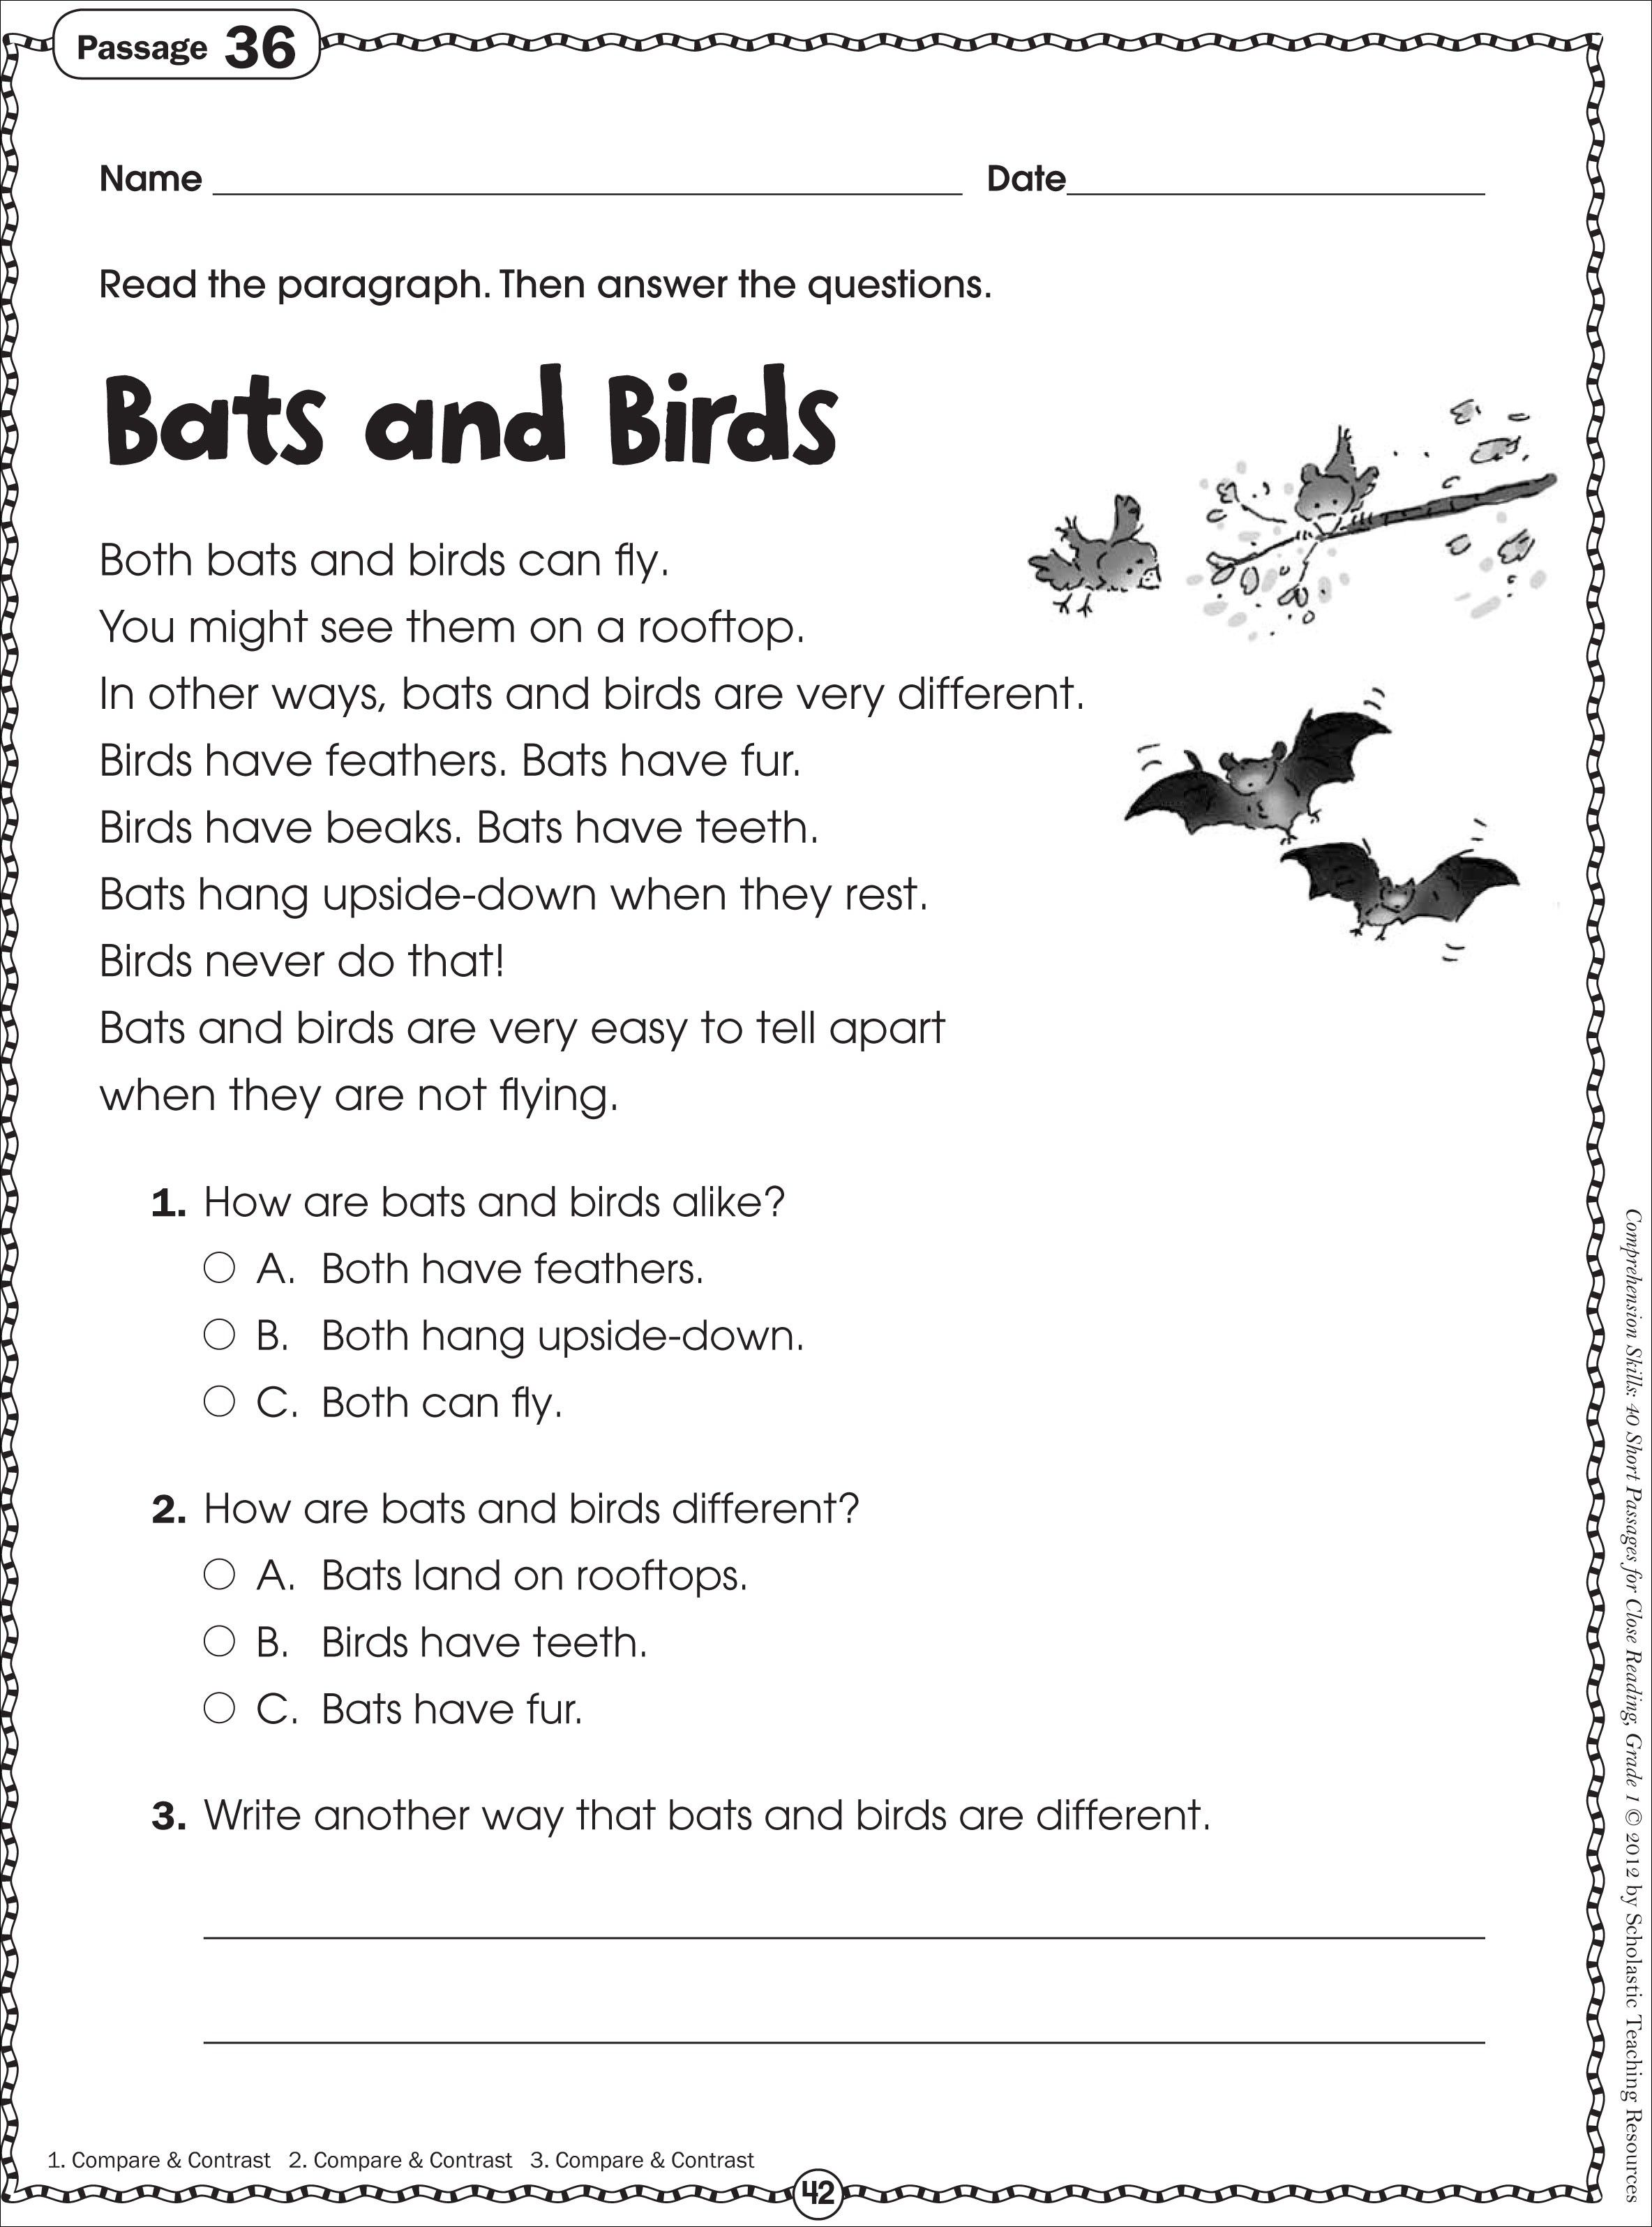 Free Worksheets For Elementary Students